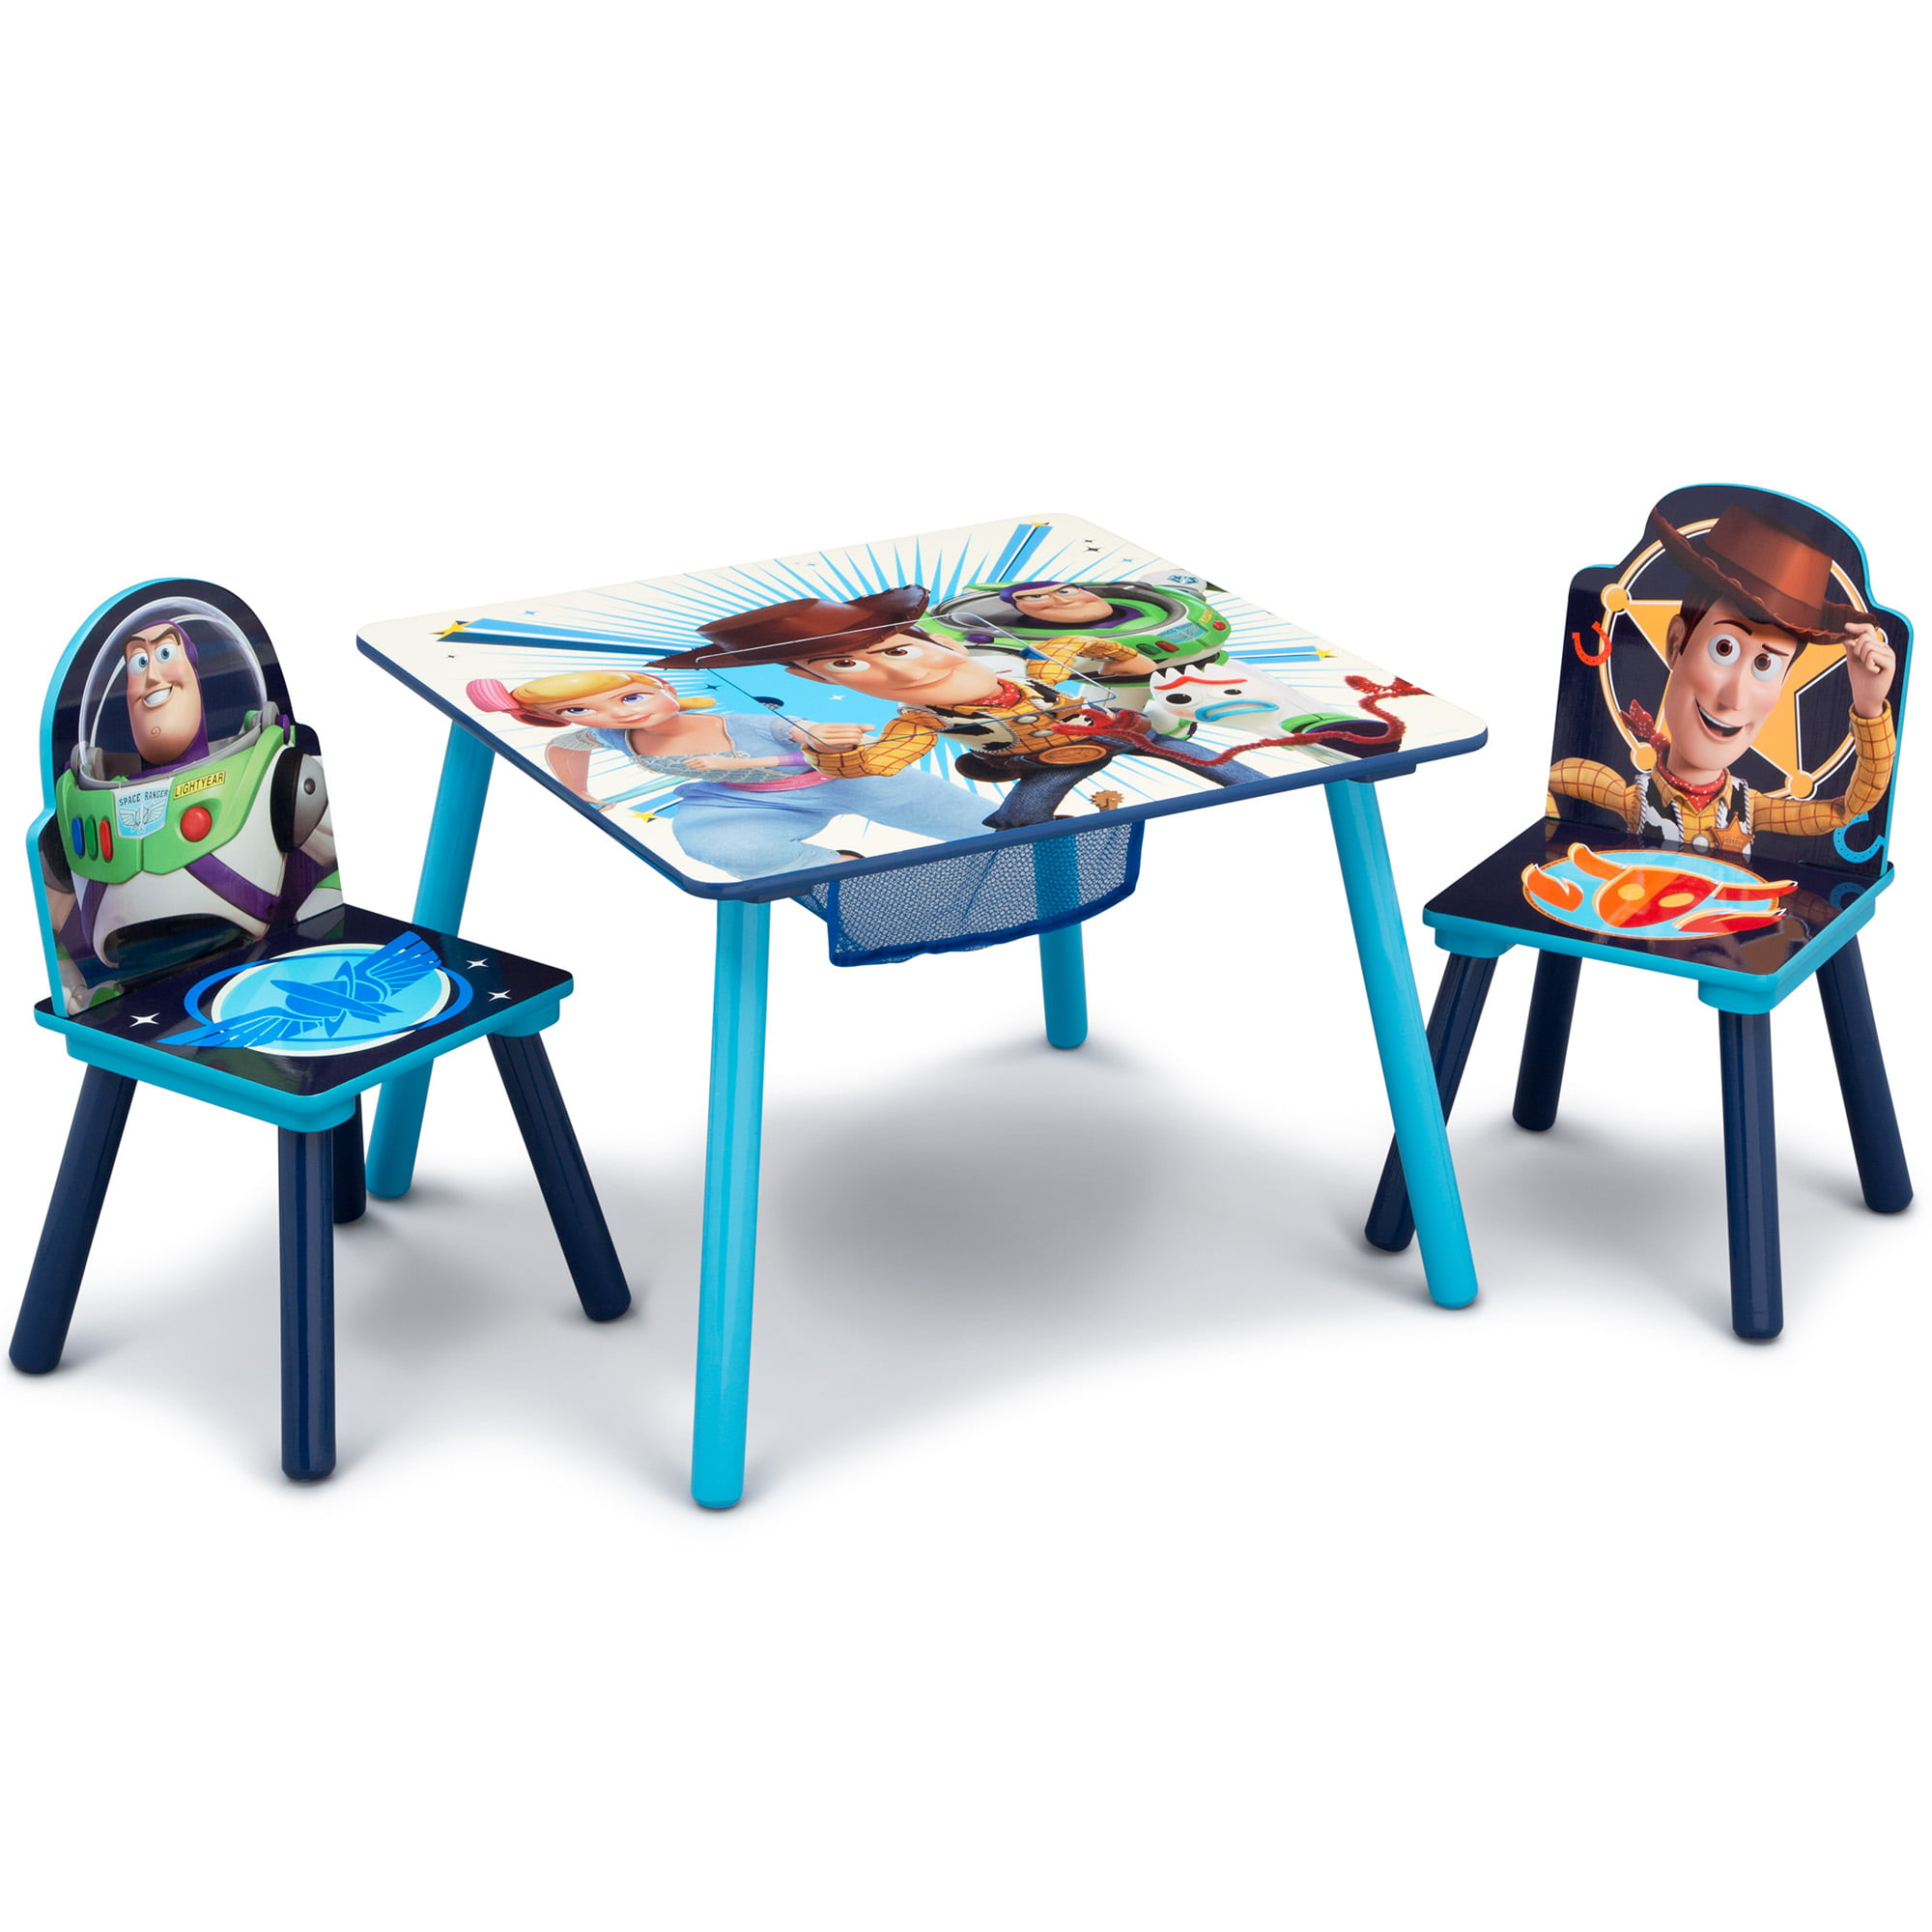 Disney Pixar Toy Story 4 Table and Chair Set with Storage - Delta Children